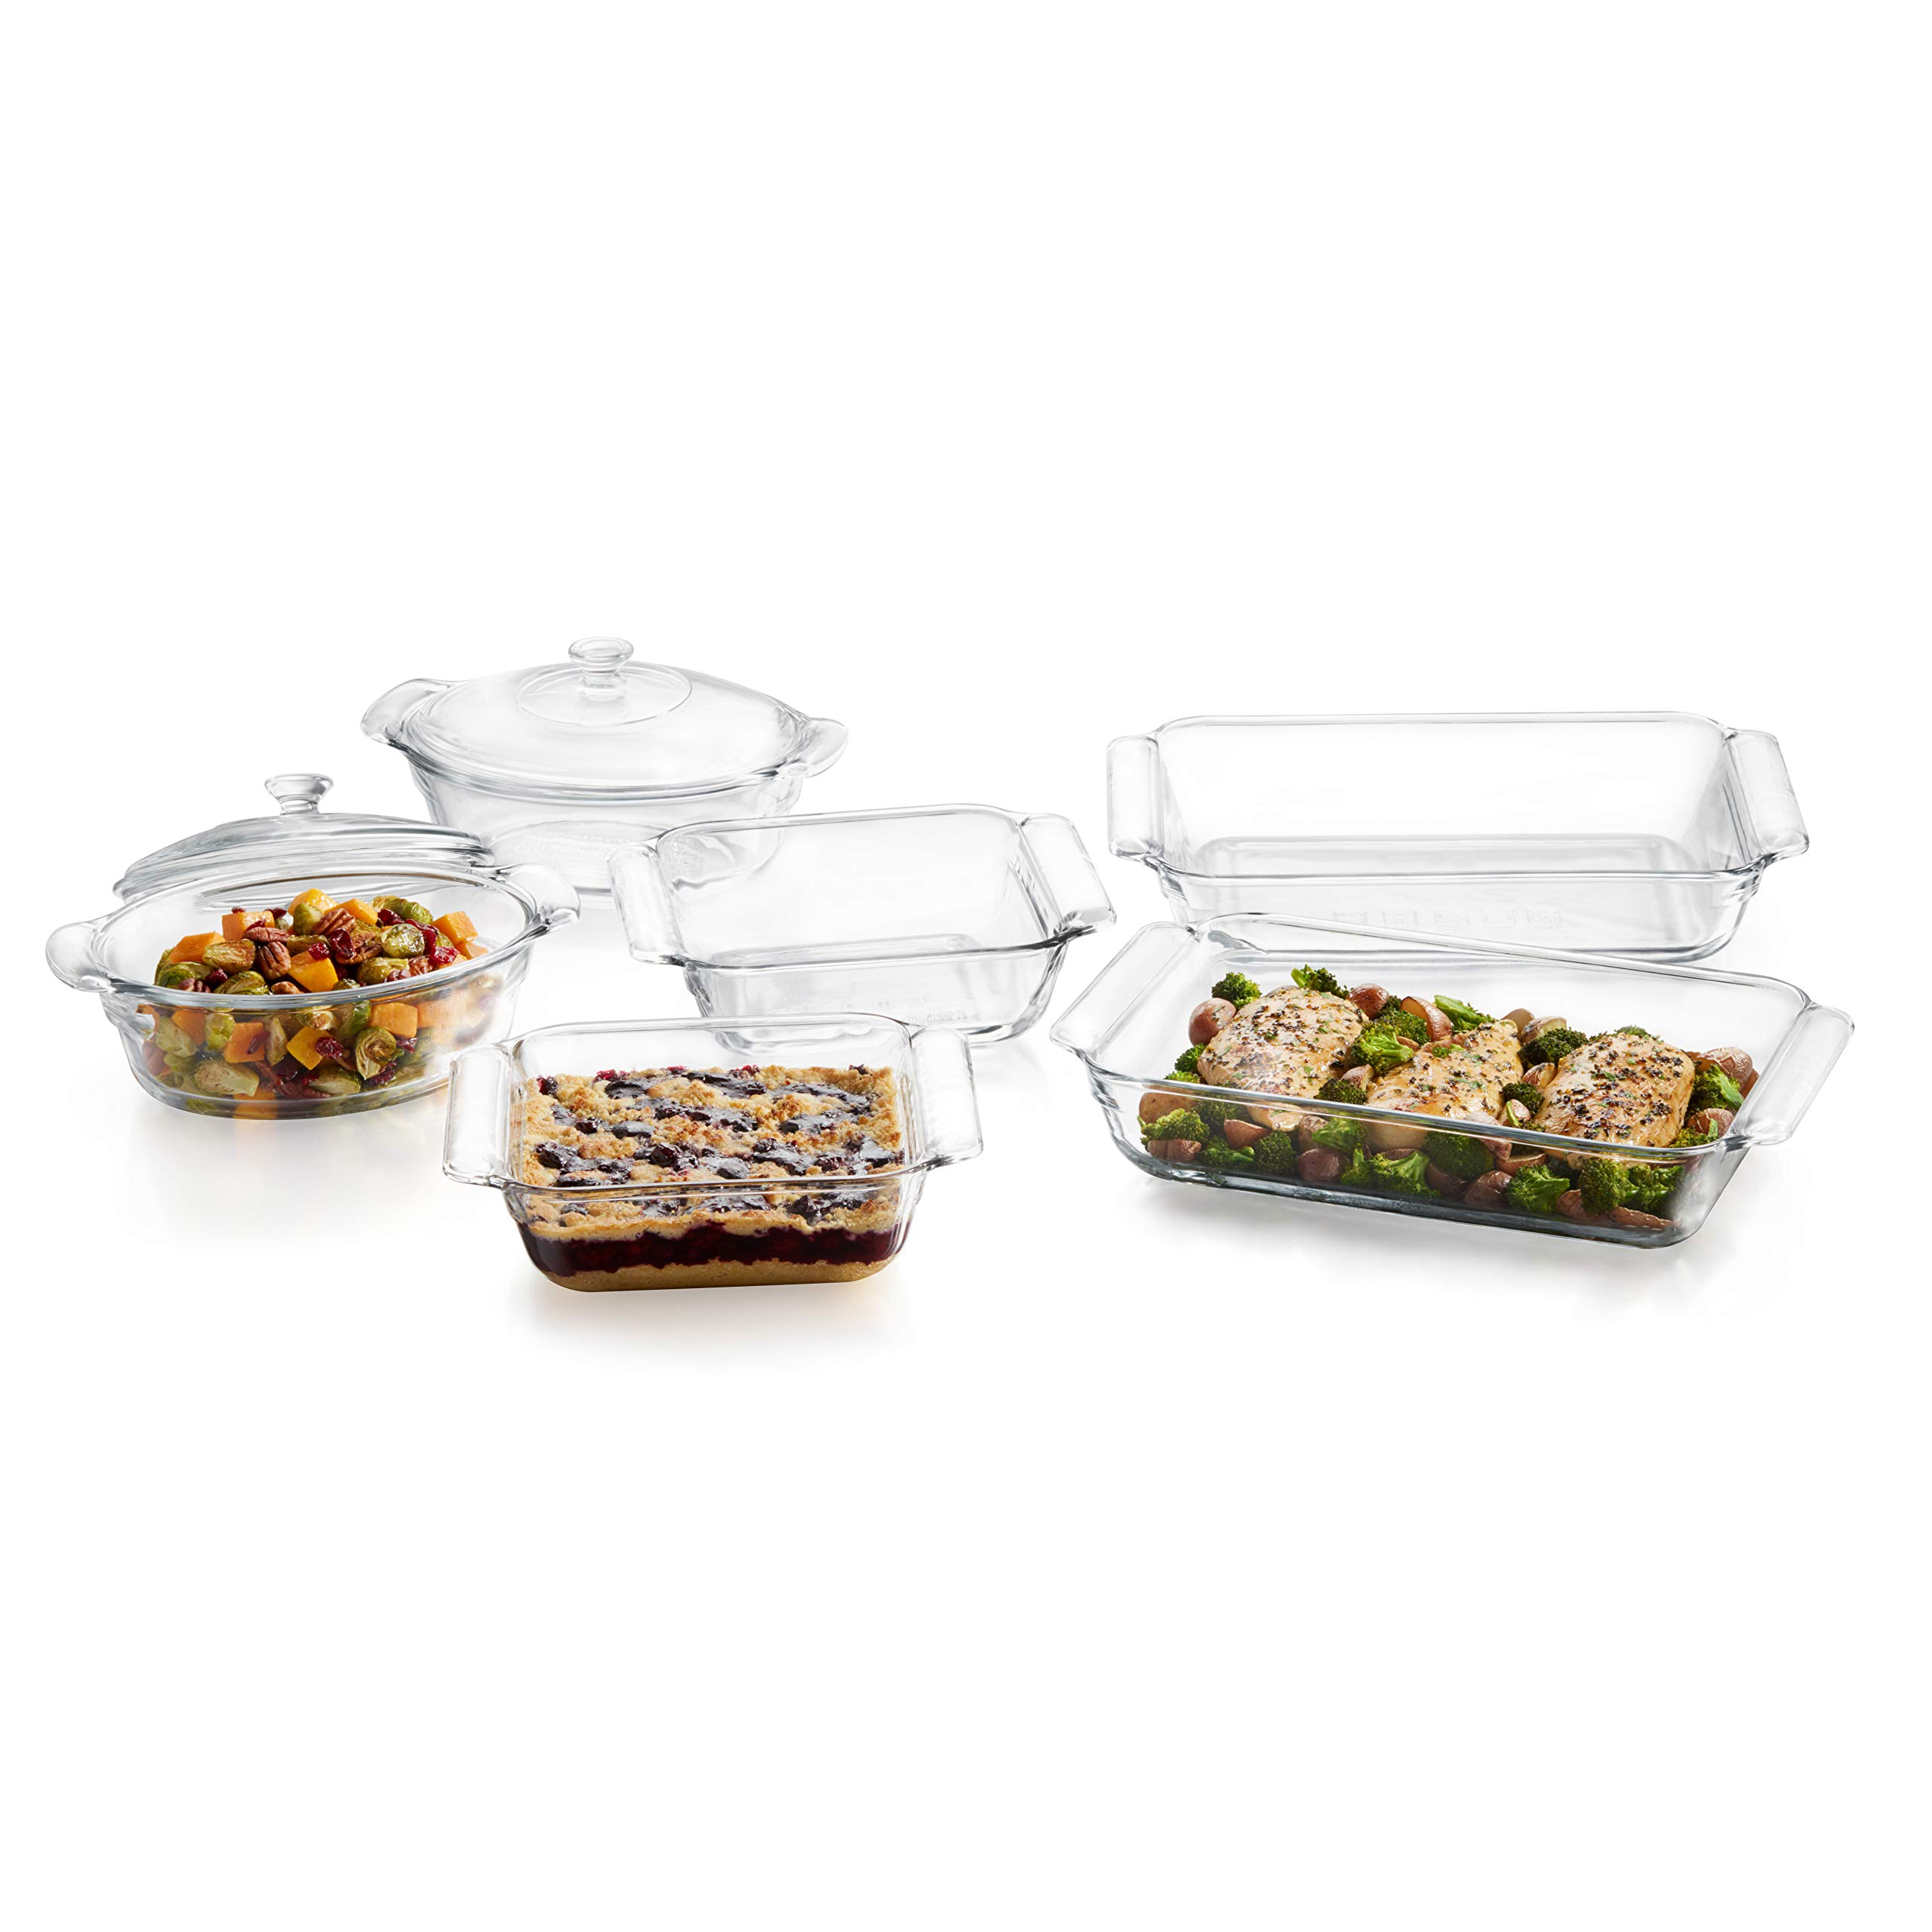 Libbey Baker's Premium 6-Piece Glass Casserole Baking Dish Set with 2 Covers by Libbey (Image #7)